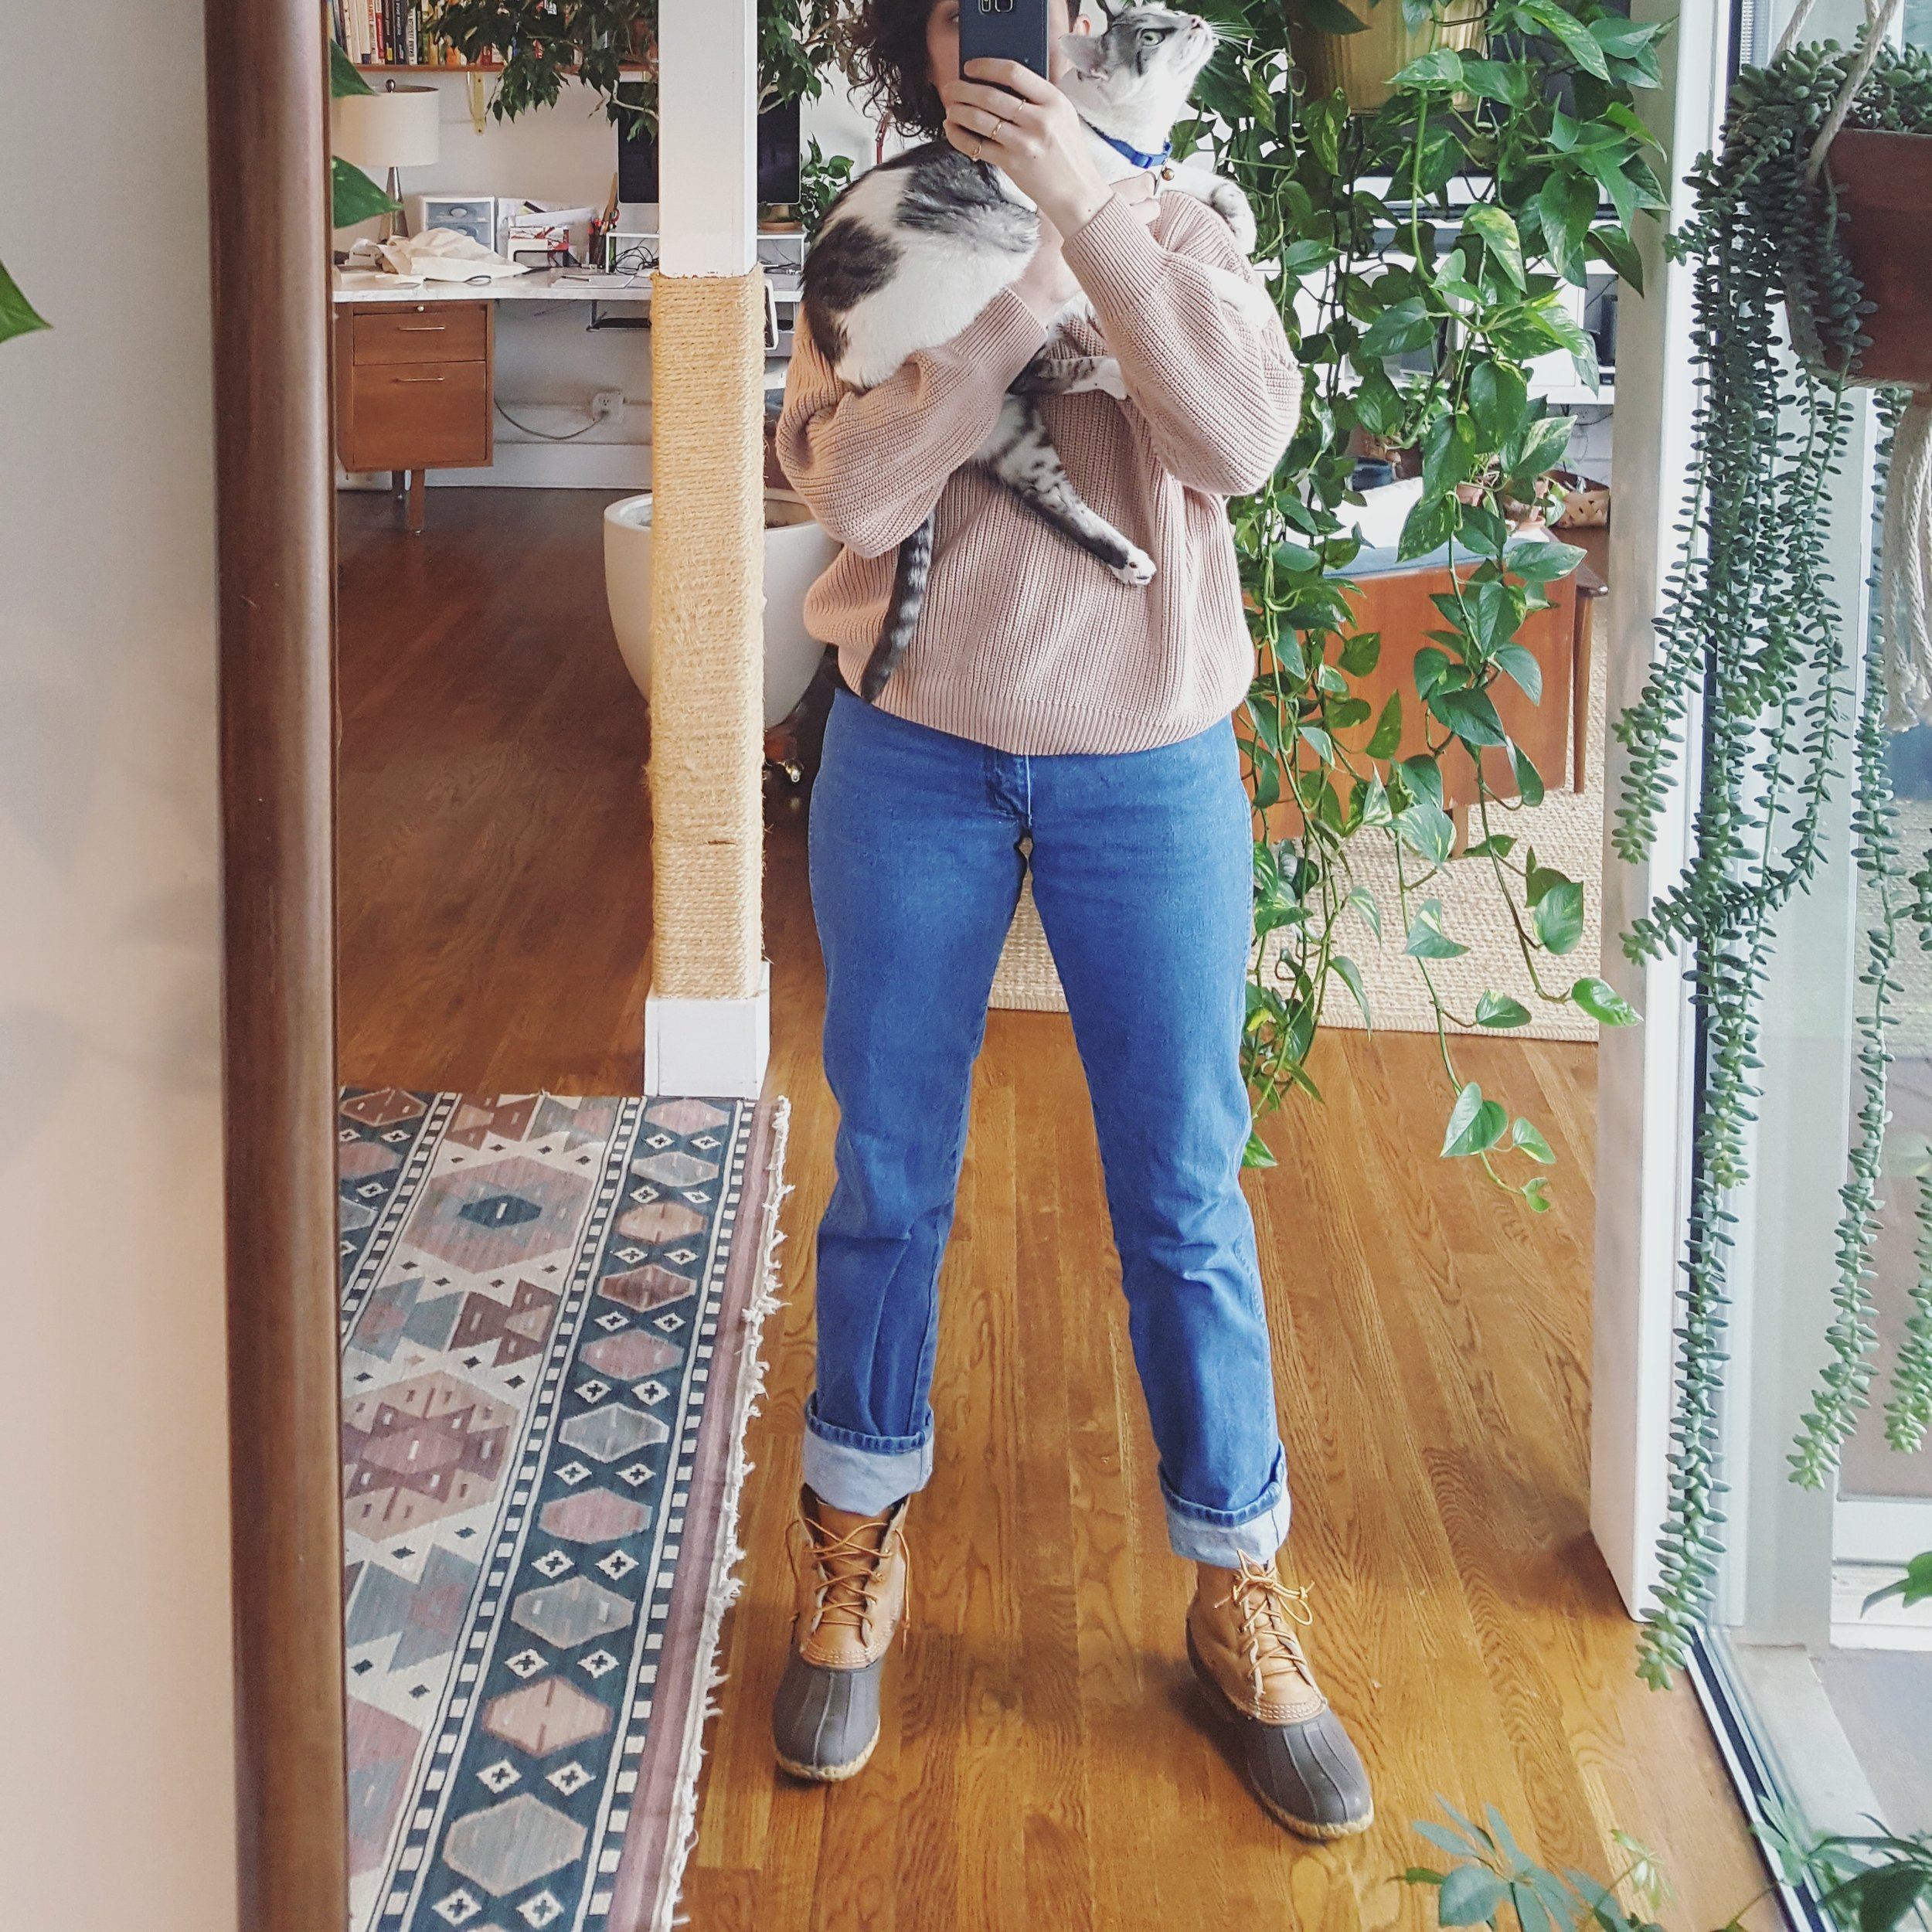 Wednesday - December 27, 2017Wrangler jeans + cotton sweater + L.L. Bean boots